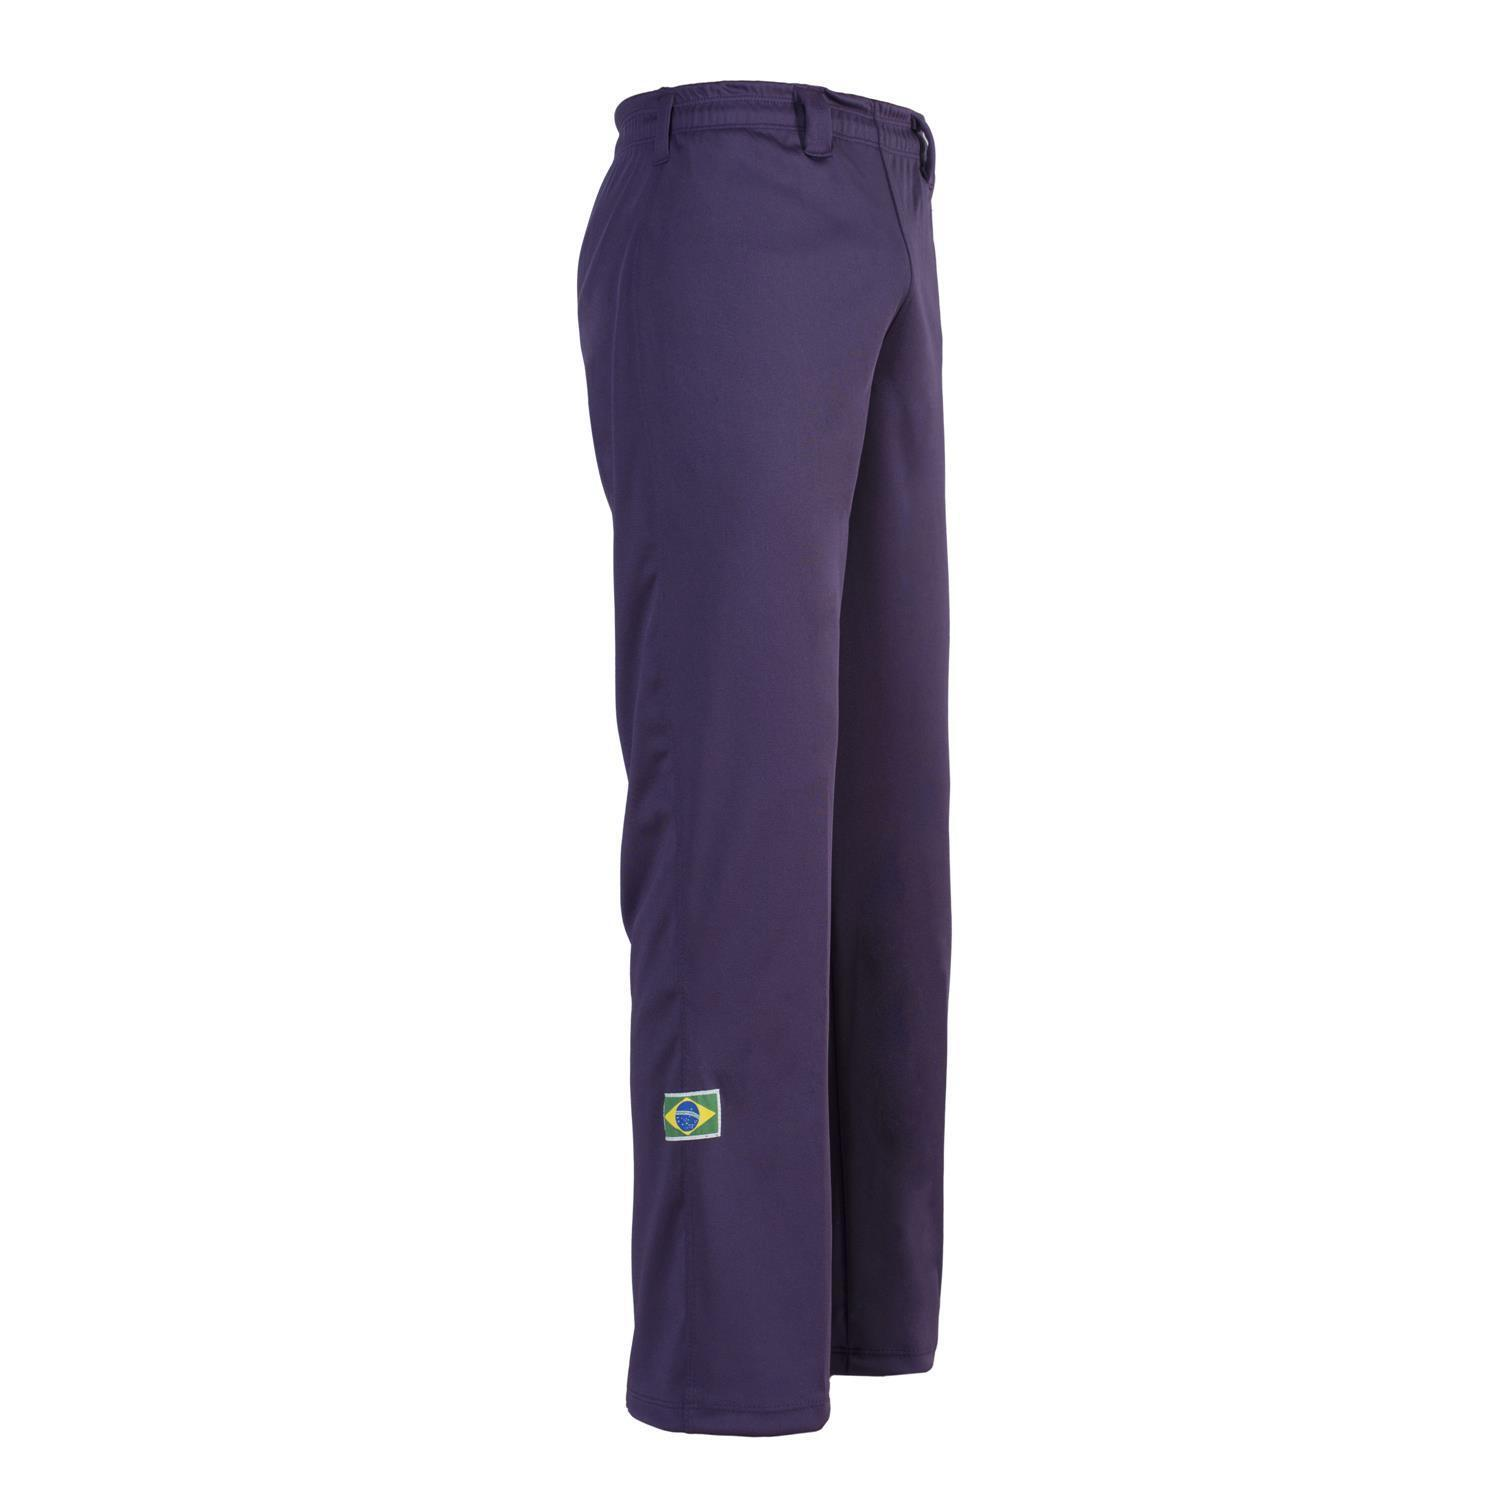 Unisex Purple Brazil Capoeira Abada Martial Arts Elastic Trousers Pants 5 Sizes